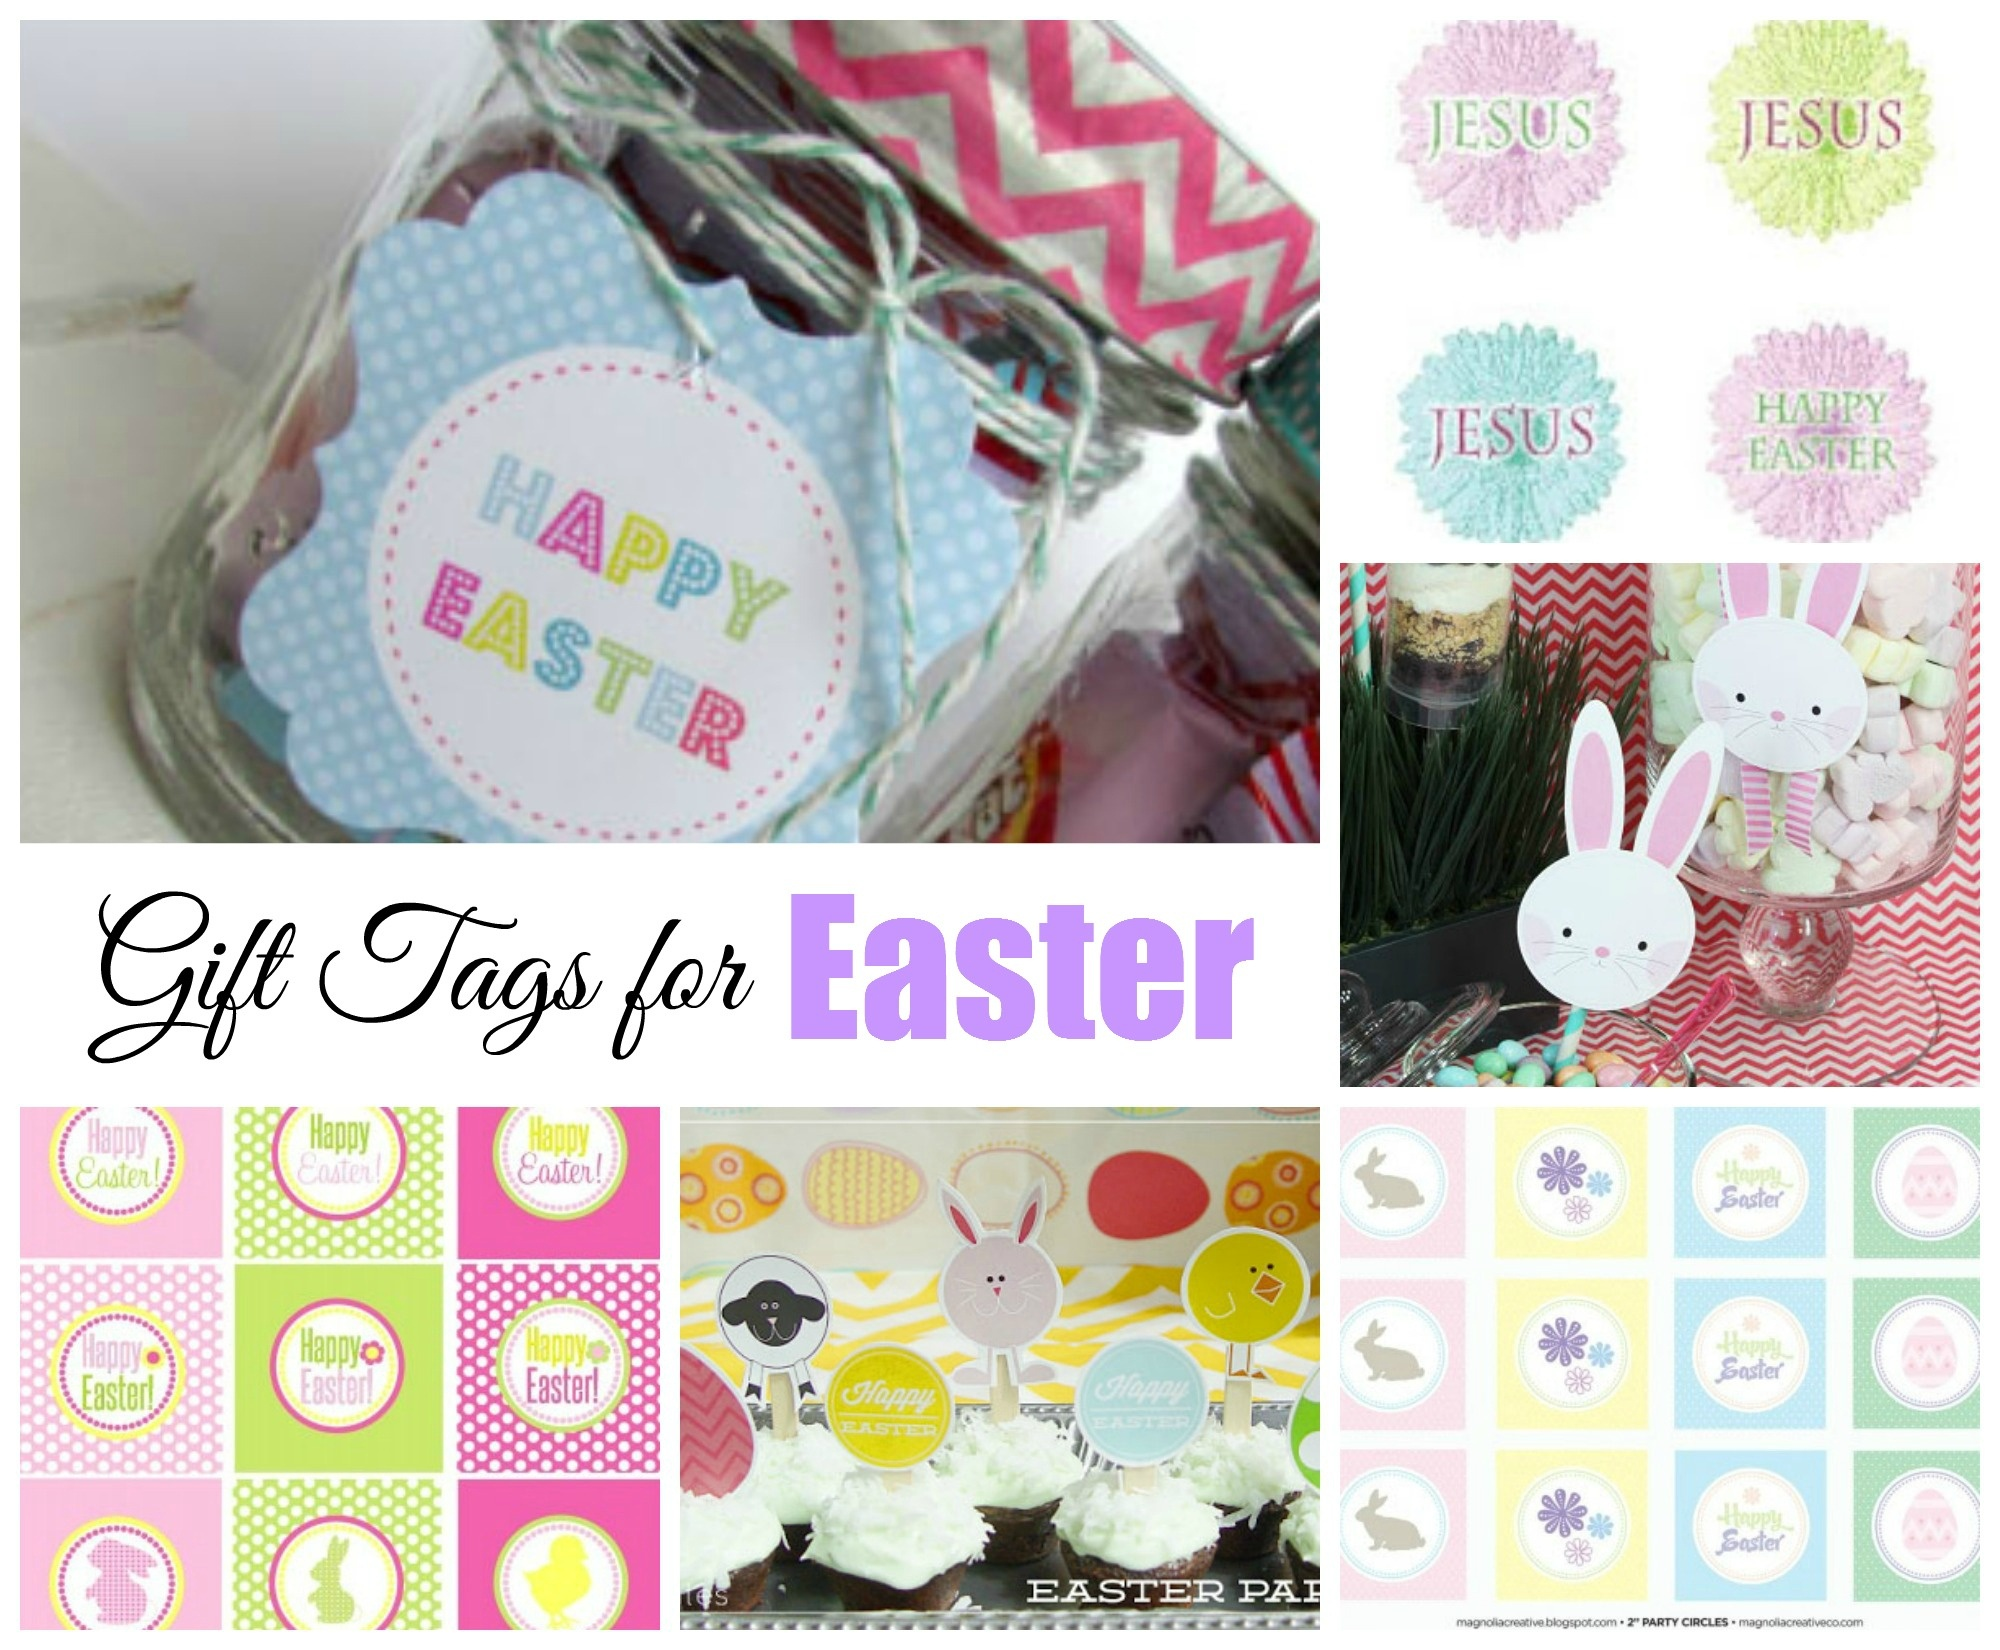 Easter Free Printable Gift Tags | Celebrating Holidays - Party Favor Tags Free Printable